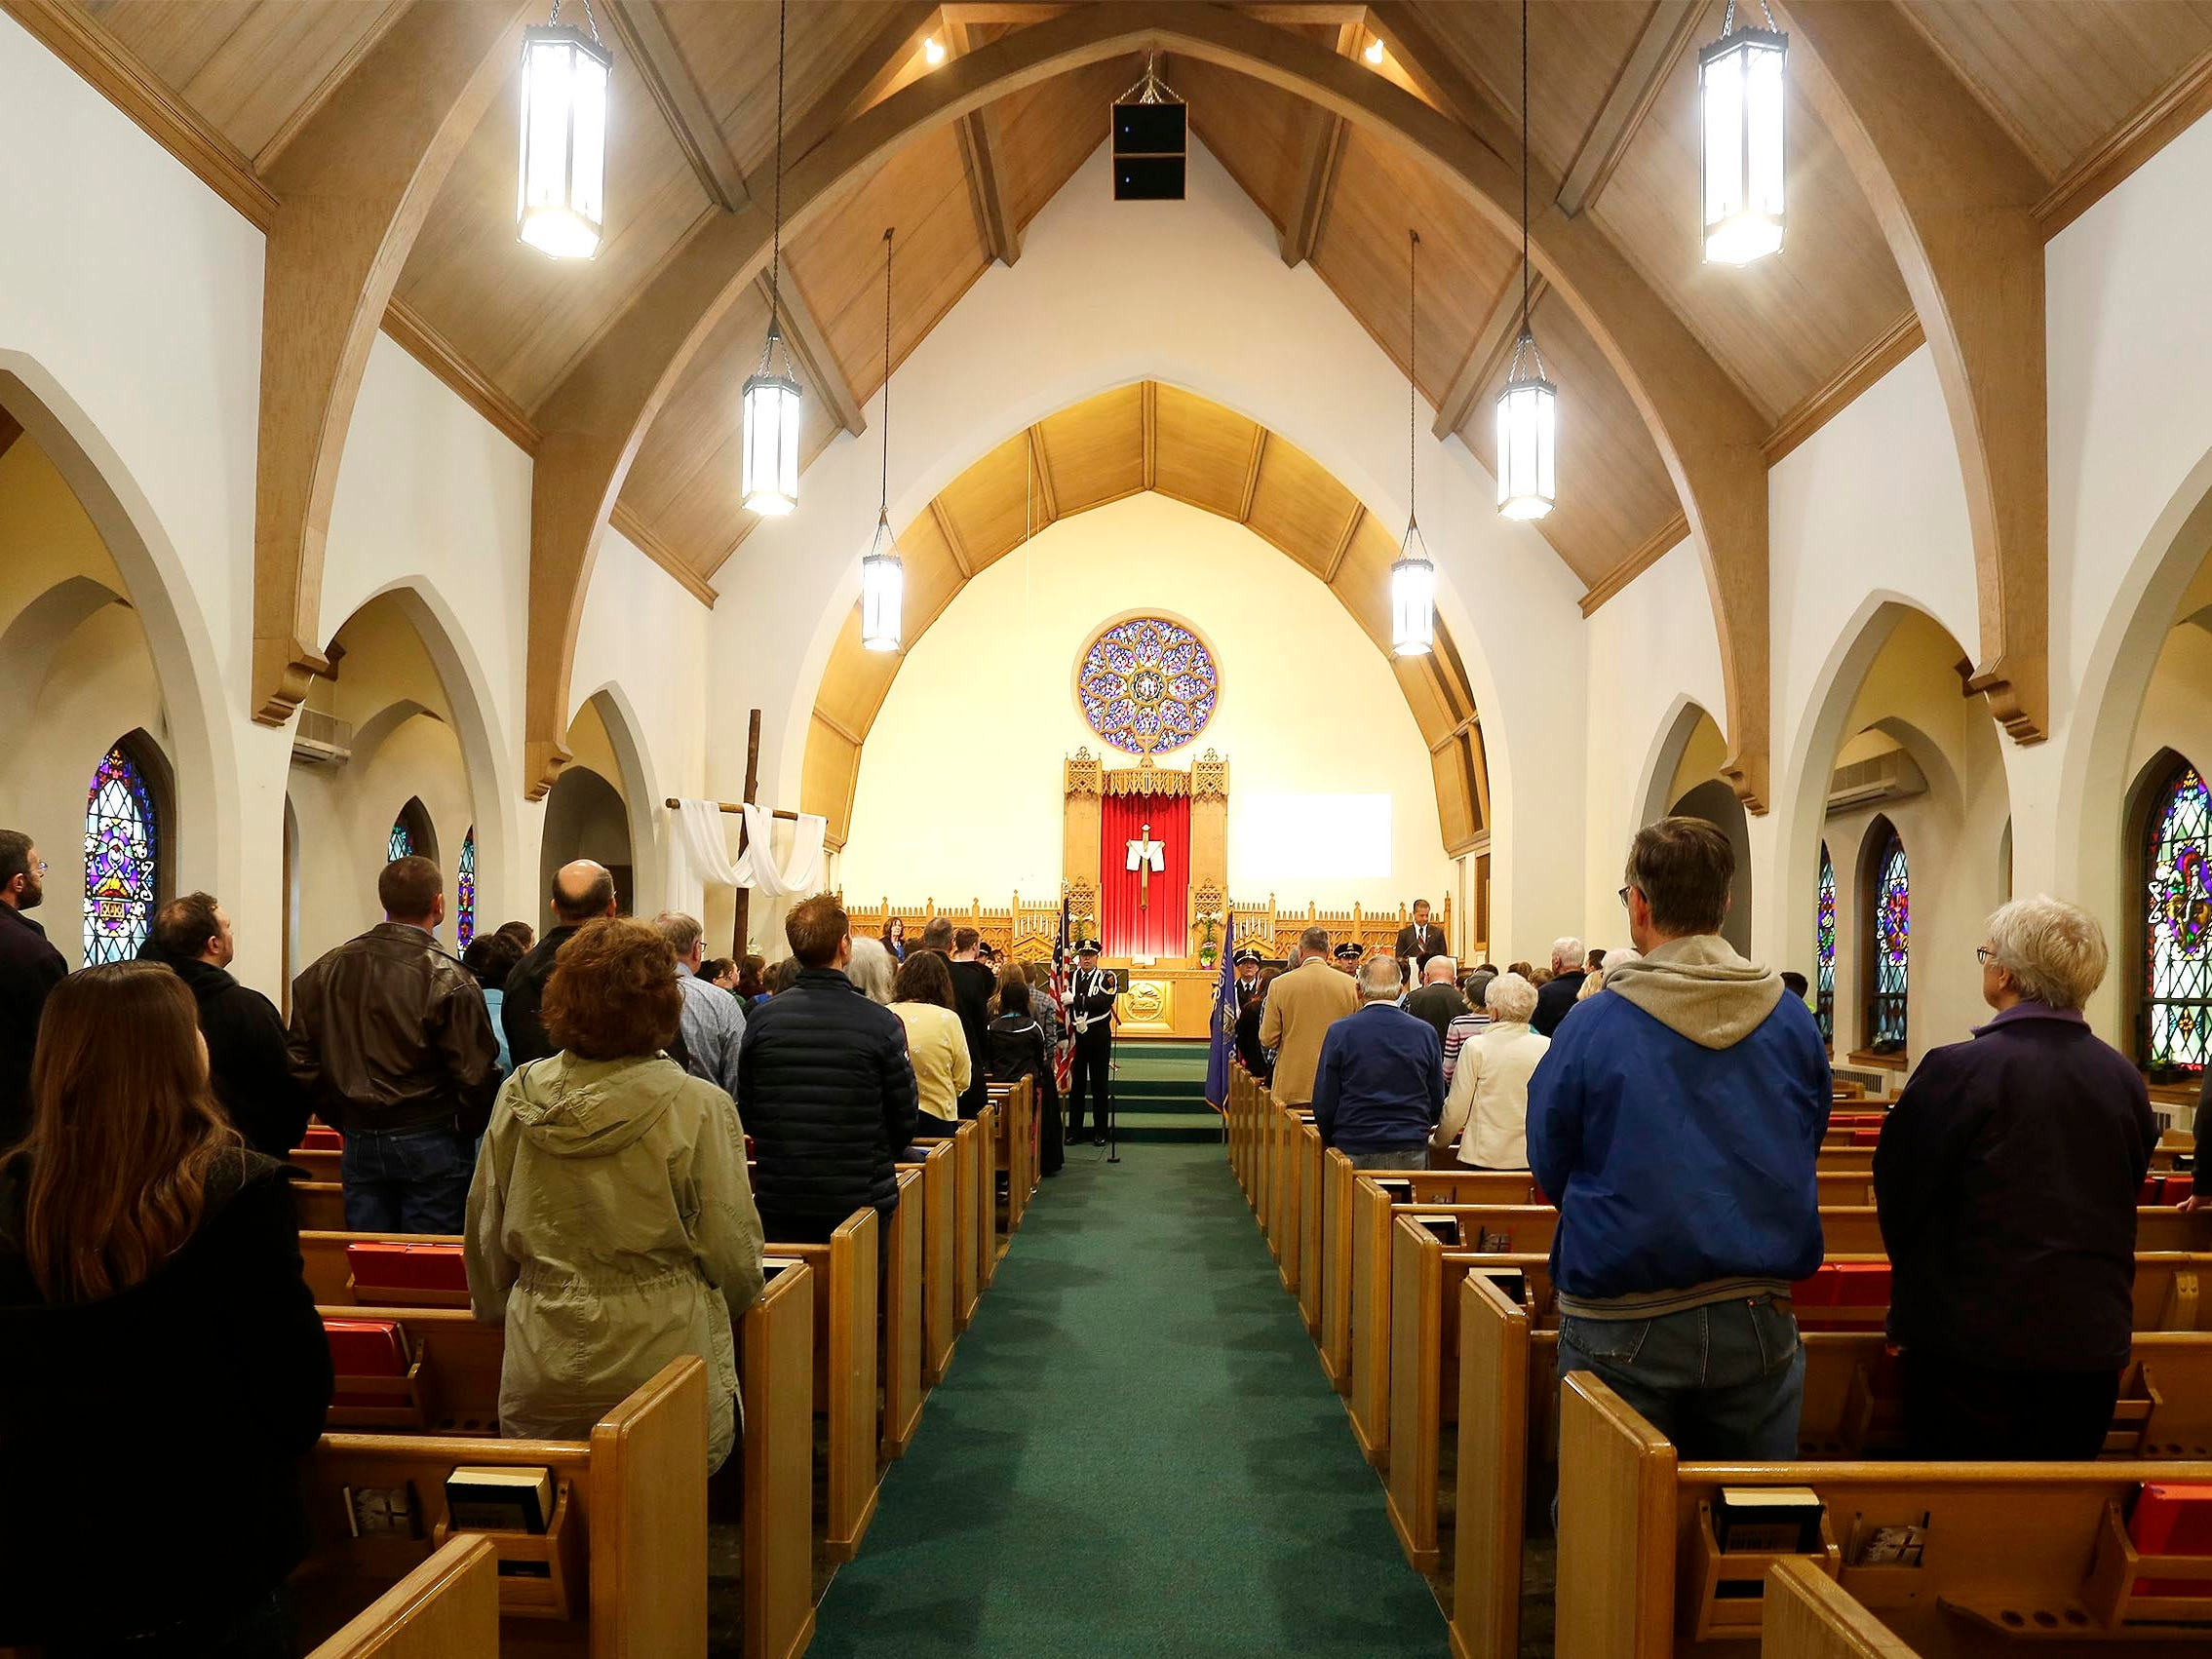 An overall during the National Day of Prayer service, Thursday, May 2, 2019, at Fountain Park Church, in Sheboygan, Wis.